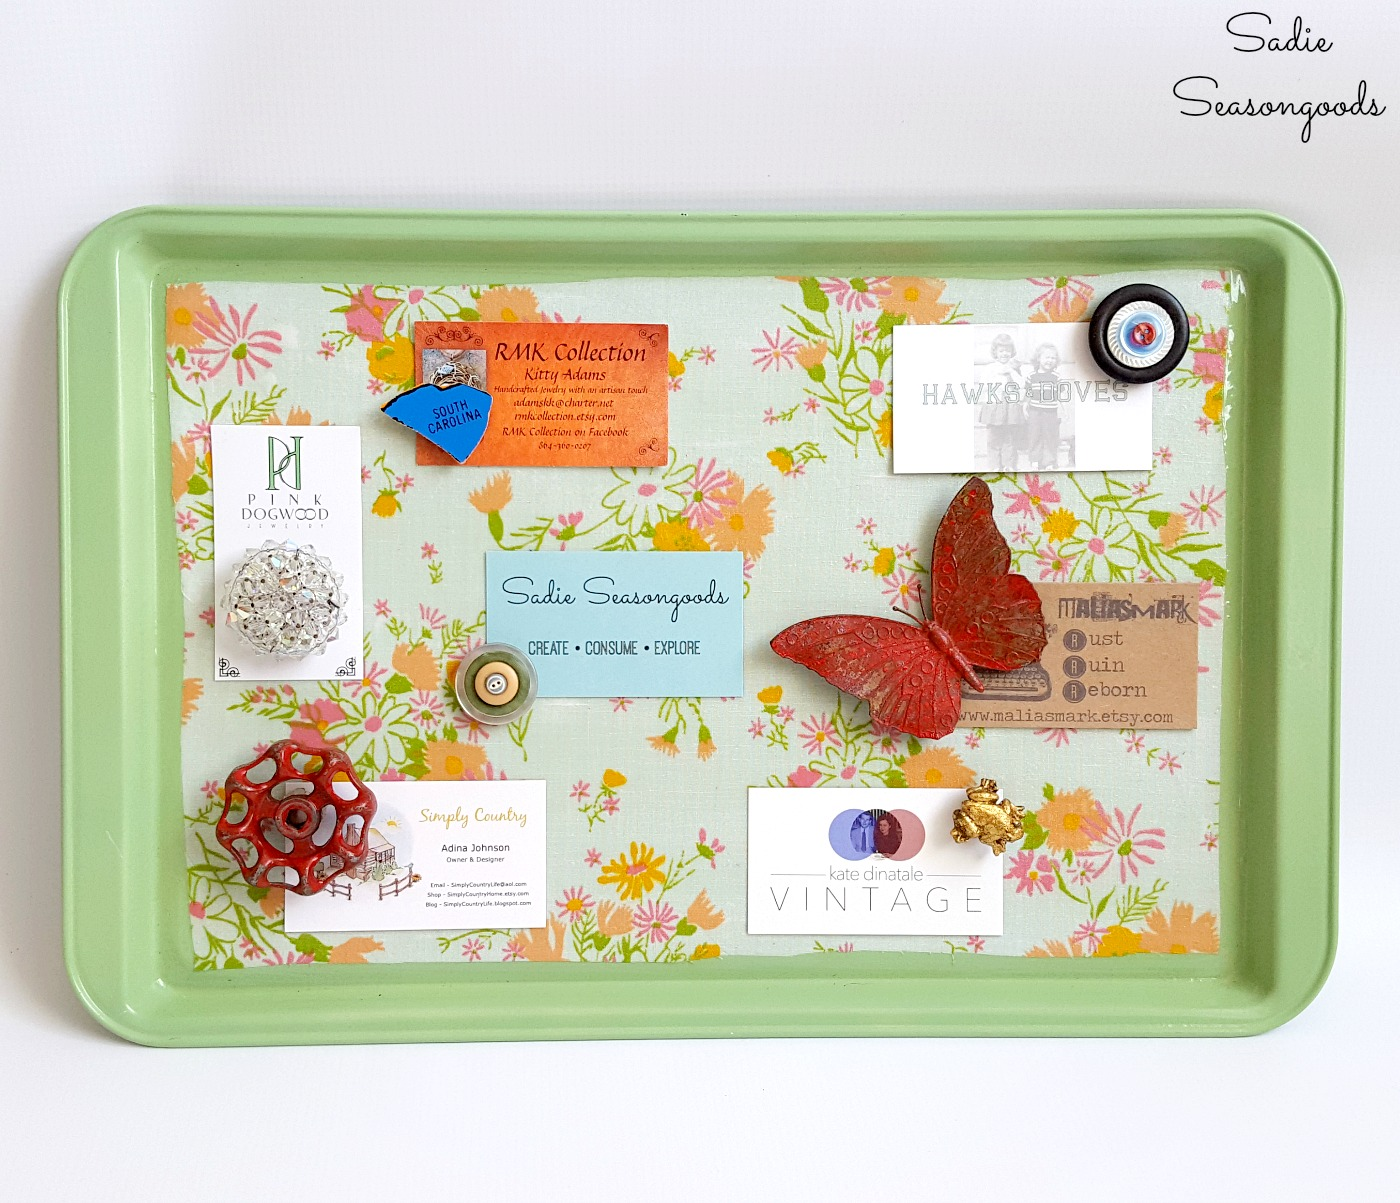 Kitchen Memo Board and Magnetic Memo Board with a Cookie Sheet